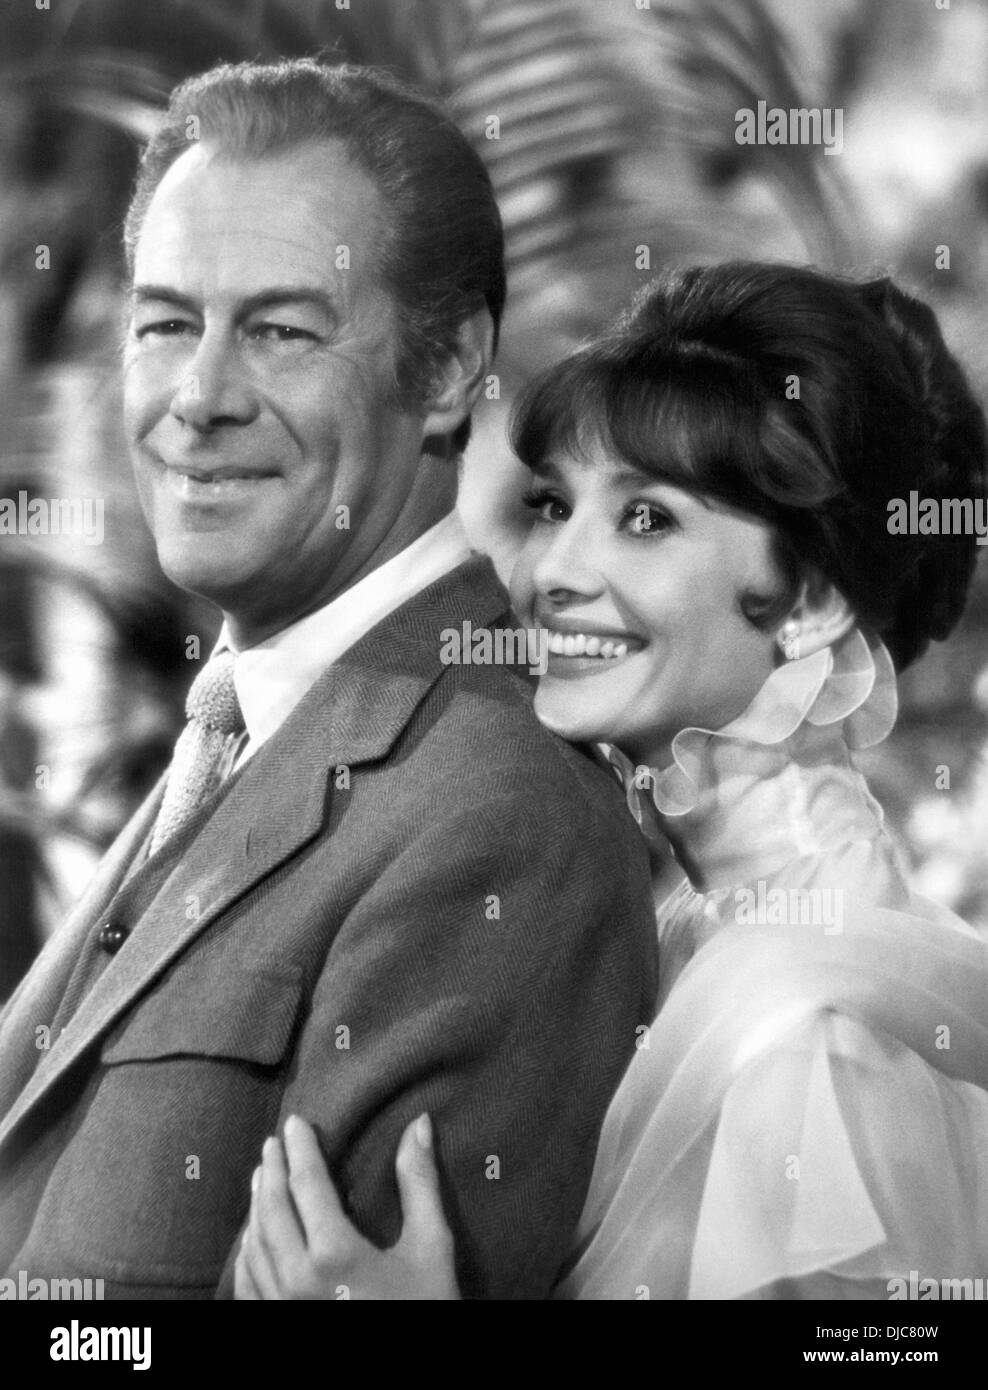 Rex Harrison And Audrey Hepburn On Set Of The Film My Fair Lady Stock Photo Alamy